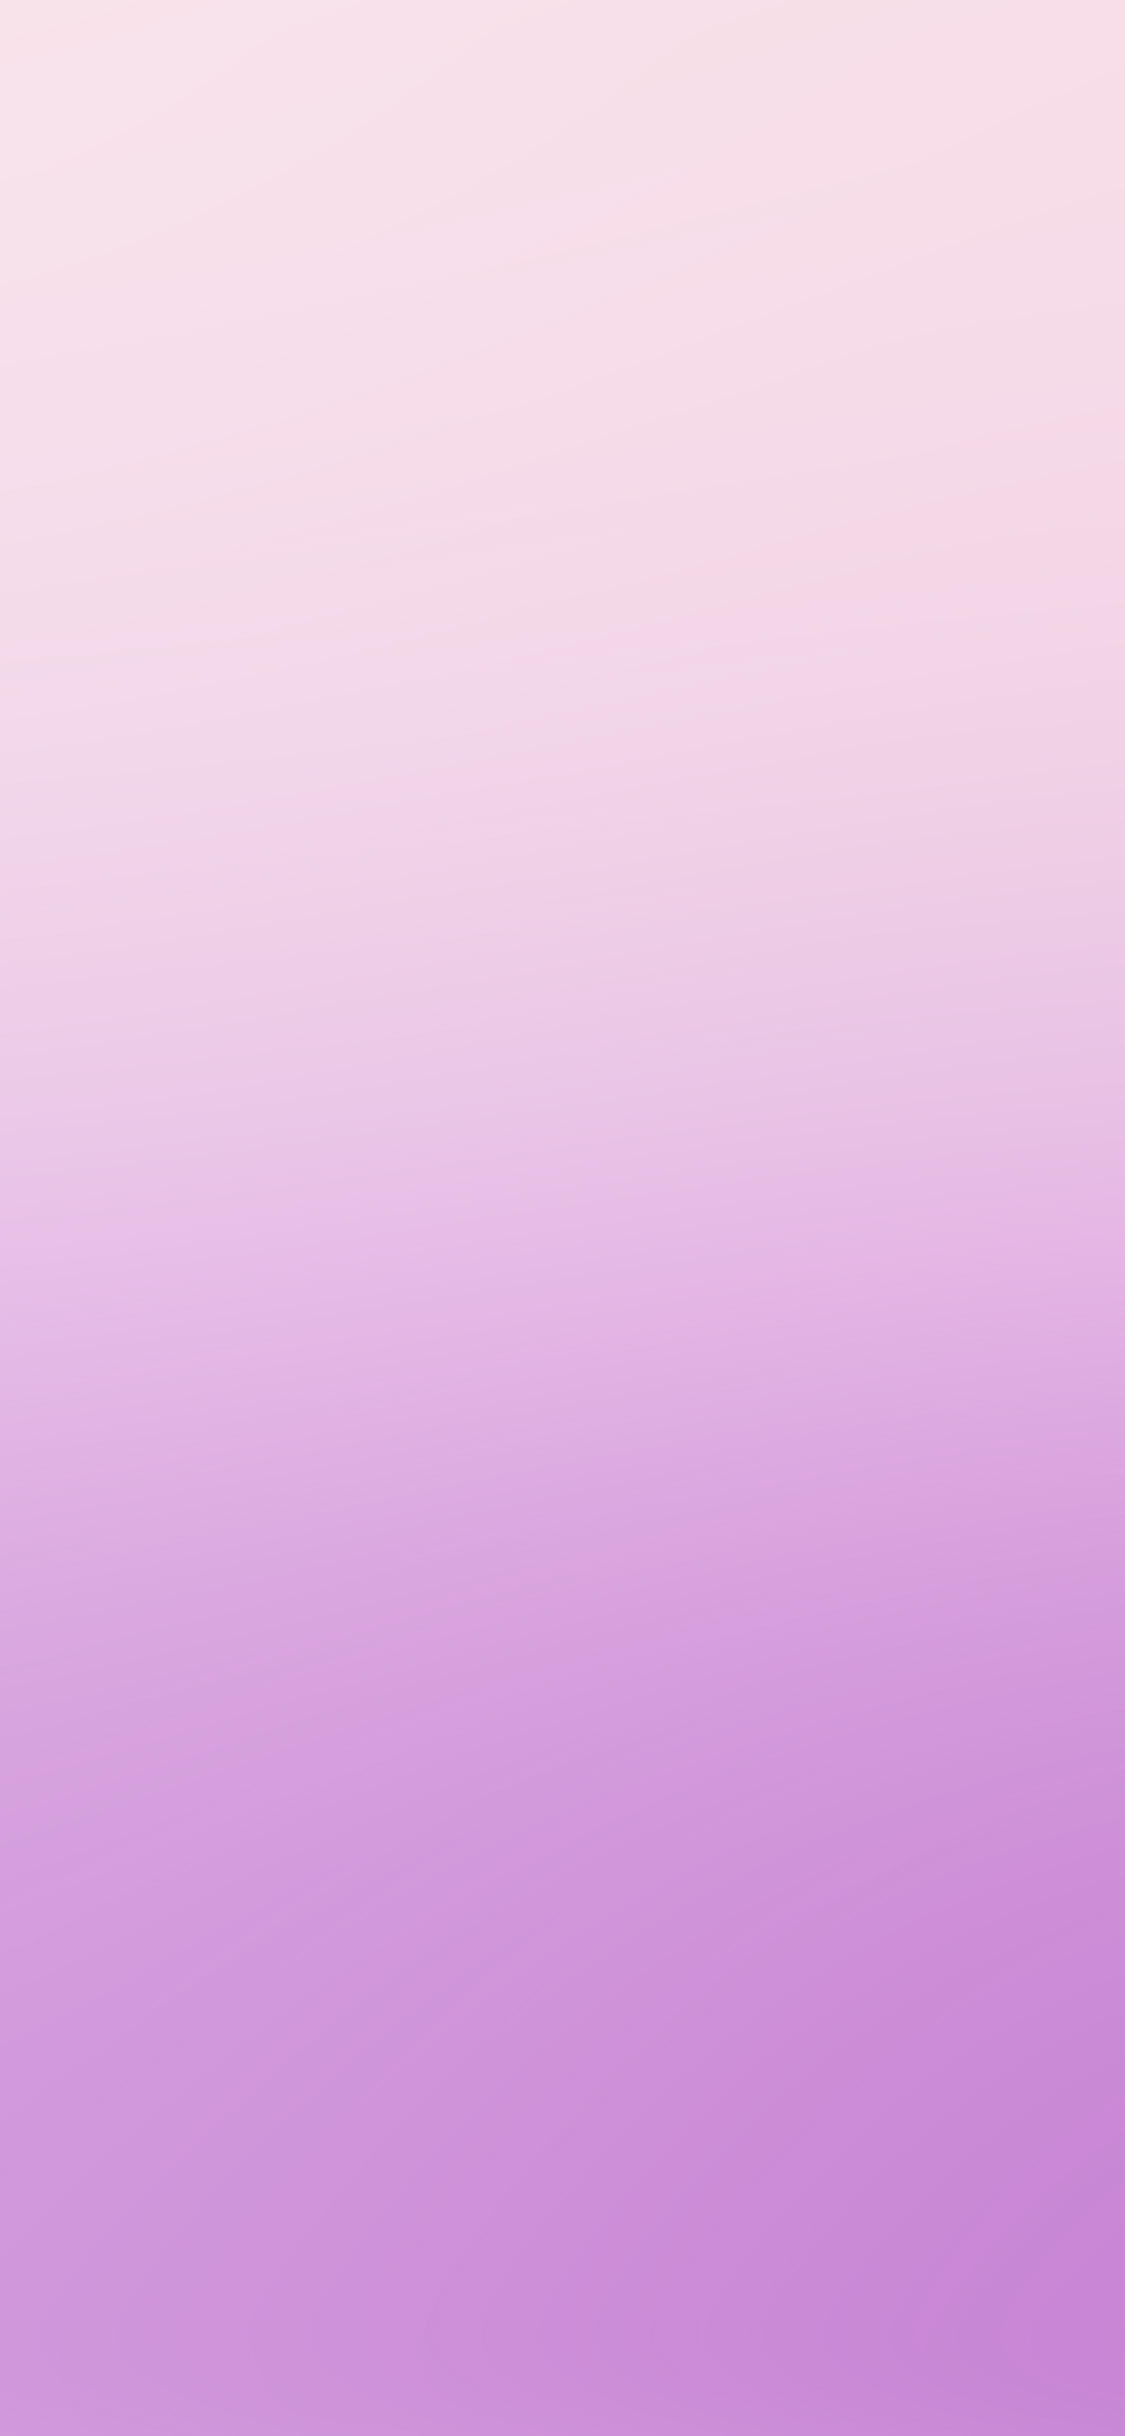 Iphone X Colour Wallpaper Sl95 Soft Pastel Violet Blur Gradation Wallpaper